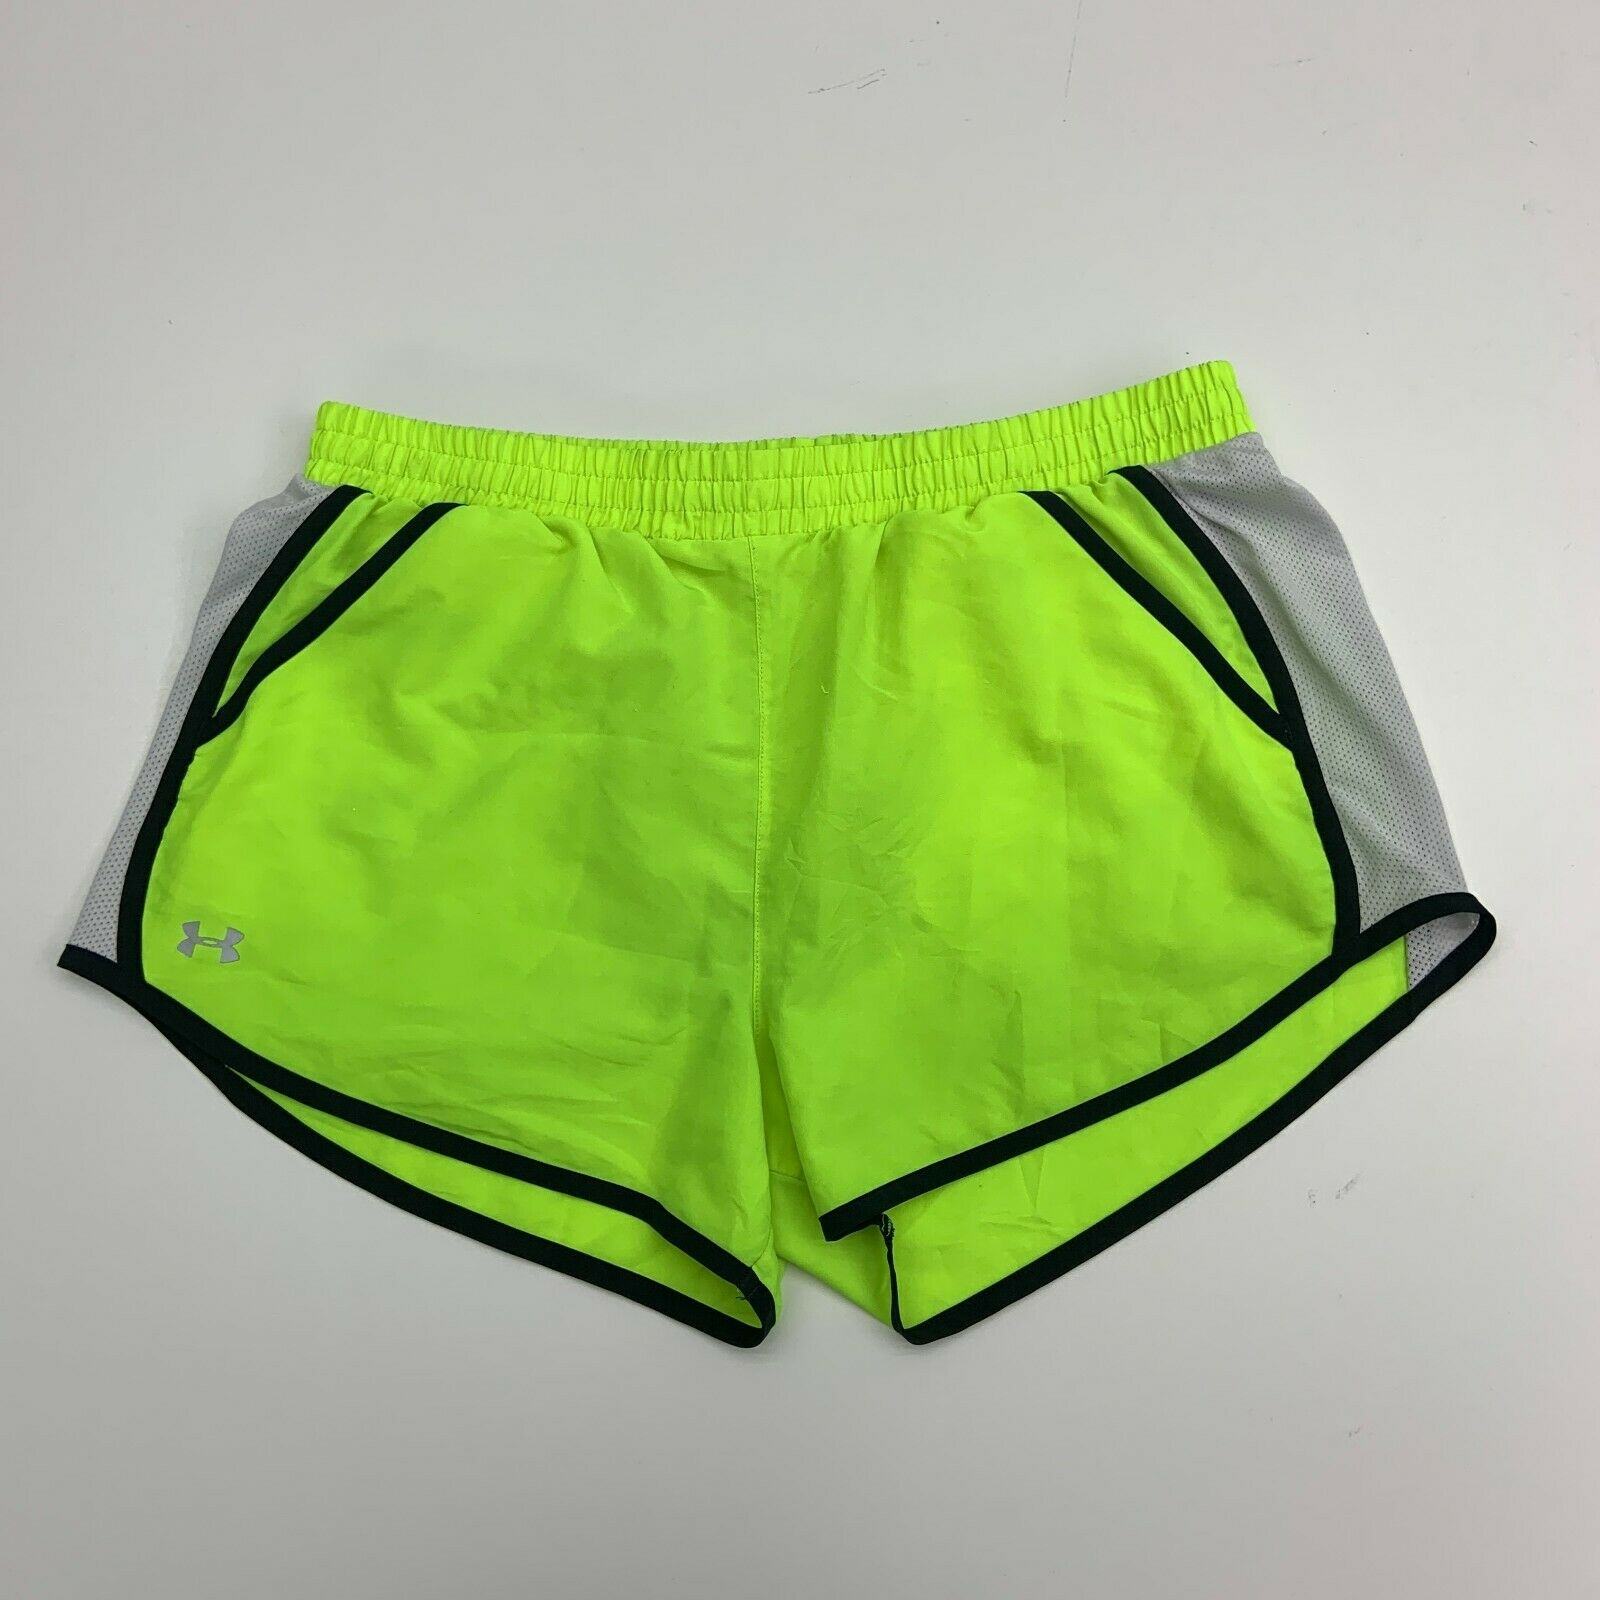 Under Armour Shorts Womens Size L Neon Yellow Athletic Running Gym